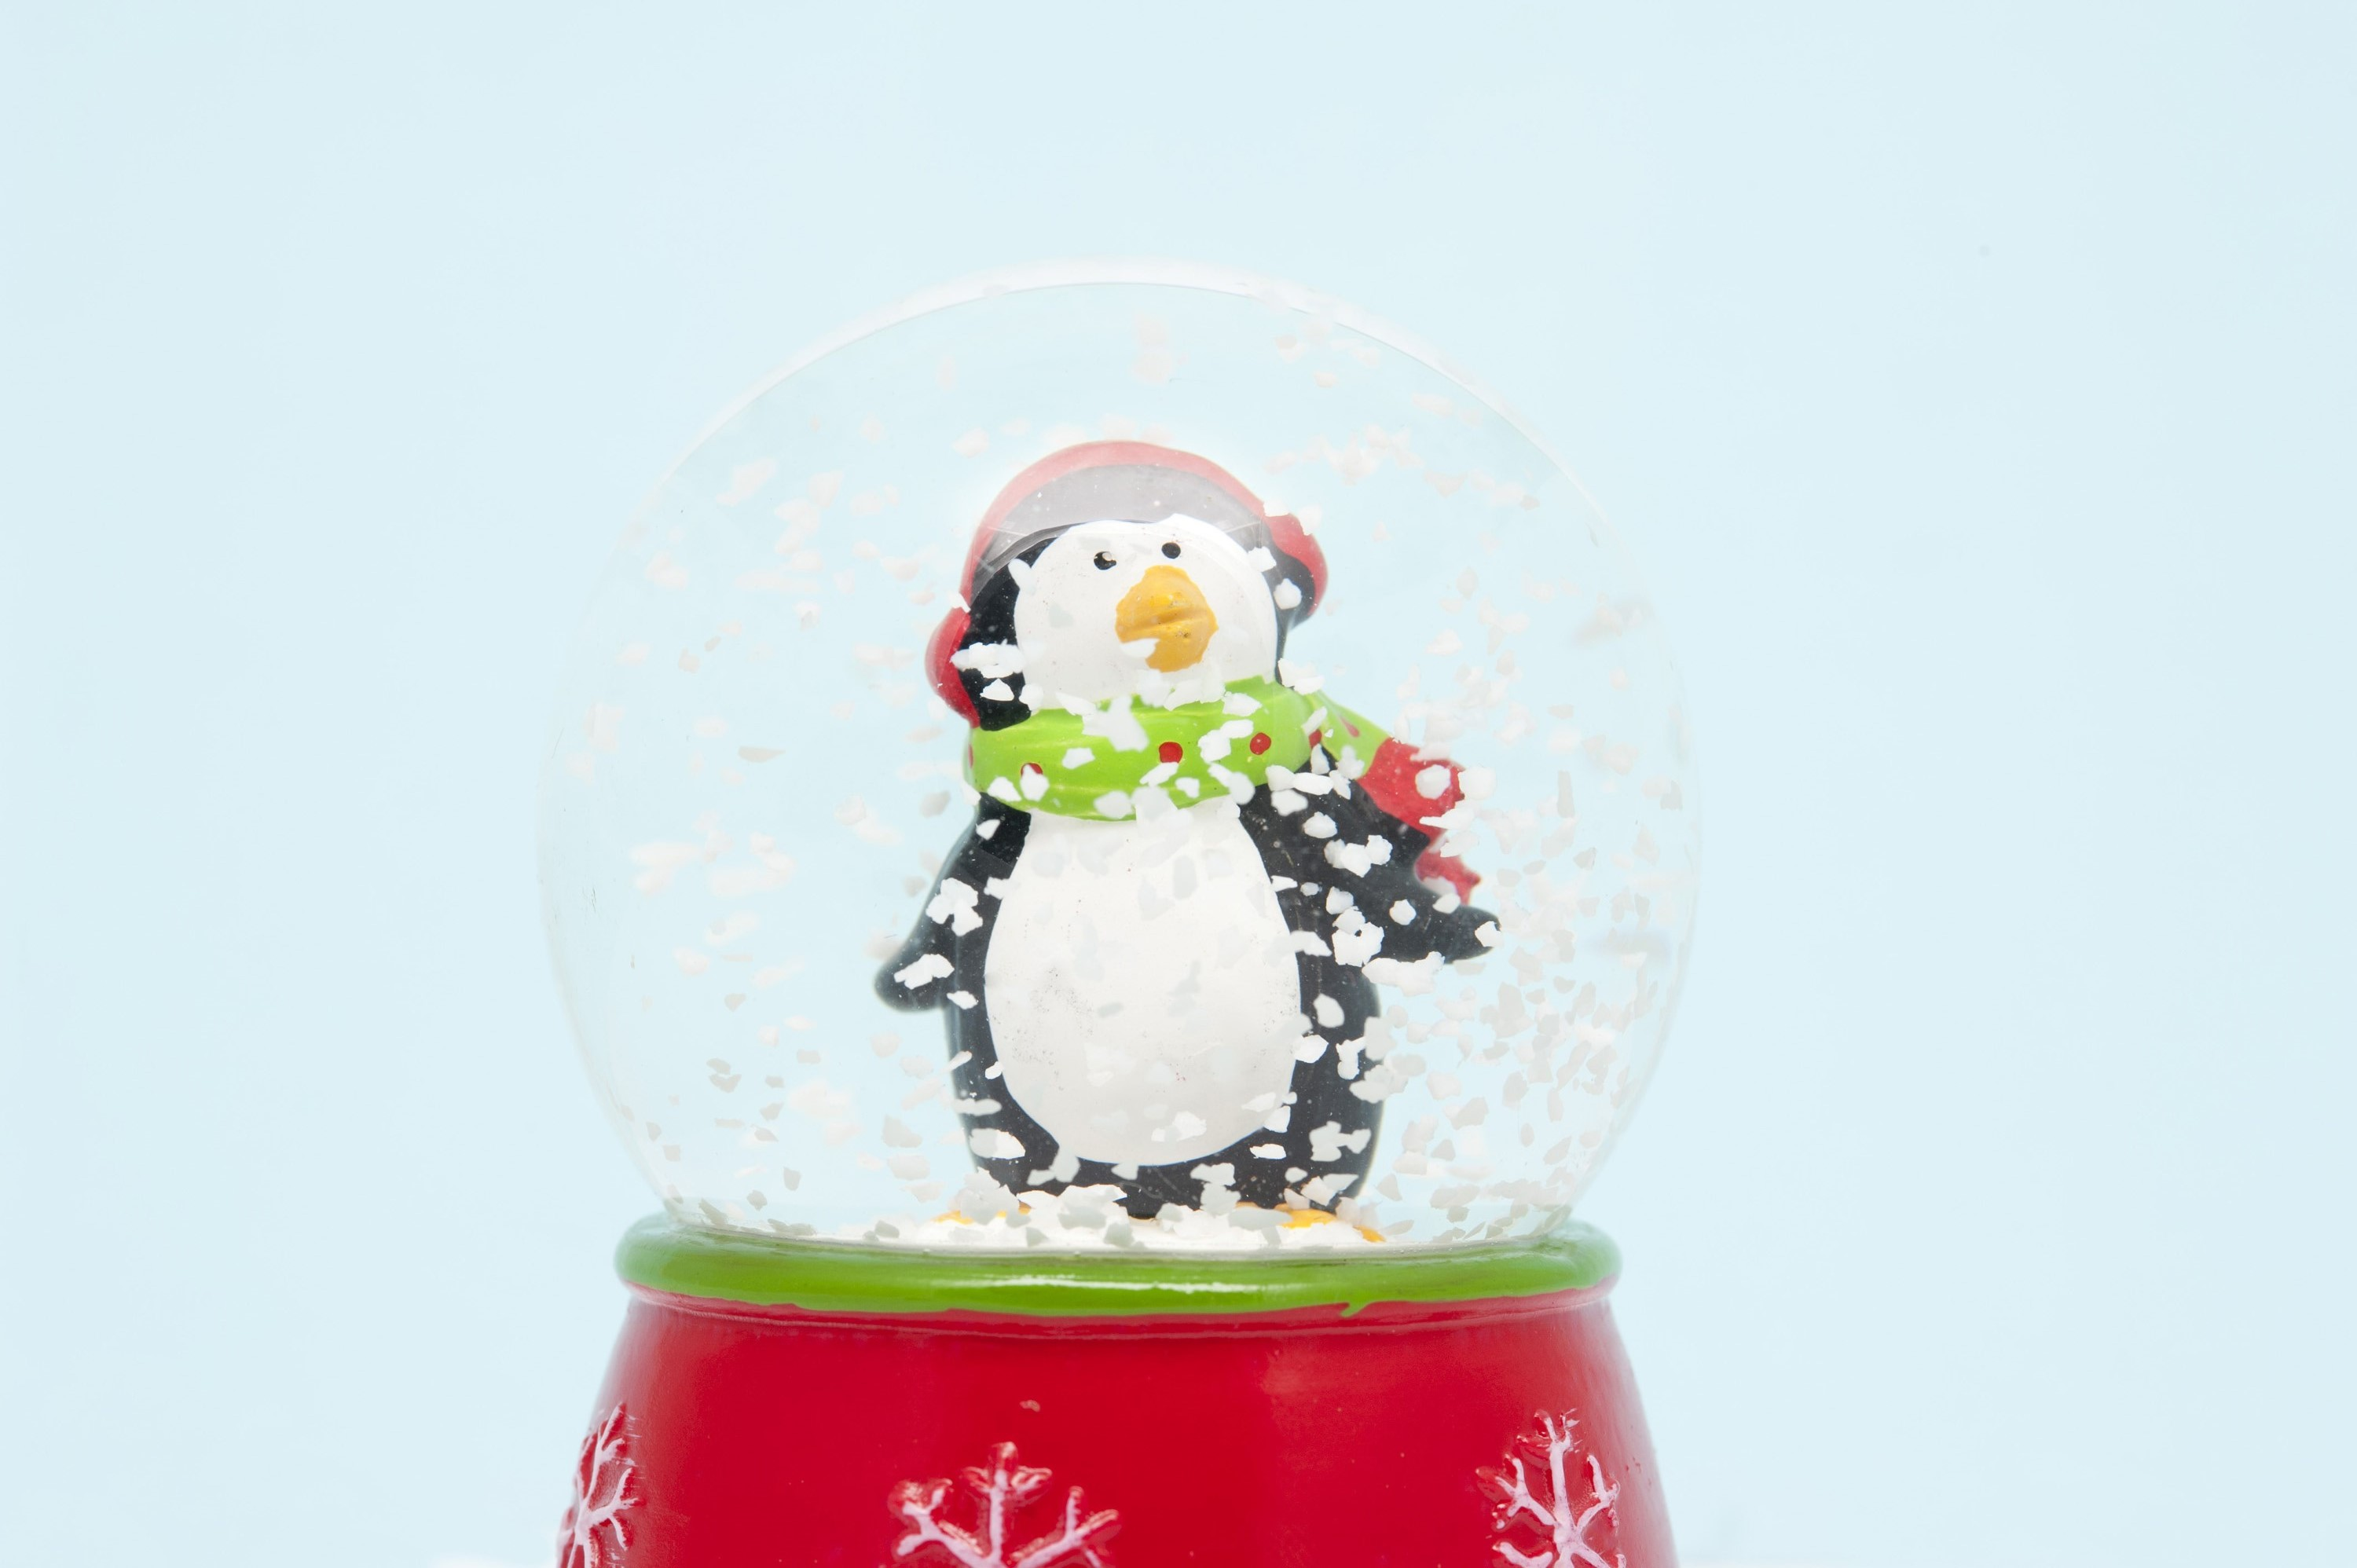 Cute little penguin in a winter scarf and cap standing in swirling snowflakes in a Christmas snow globe decoration against a light blue background with copyspace